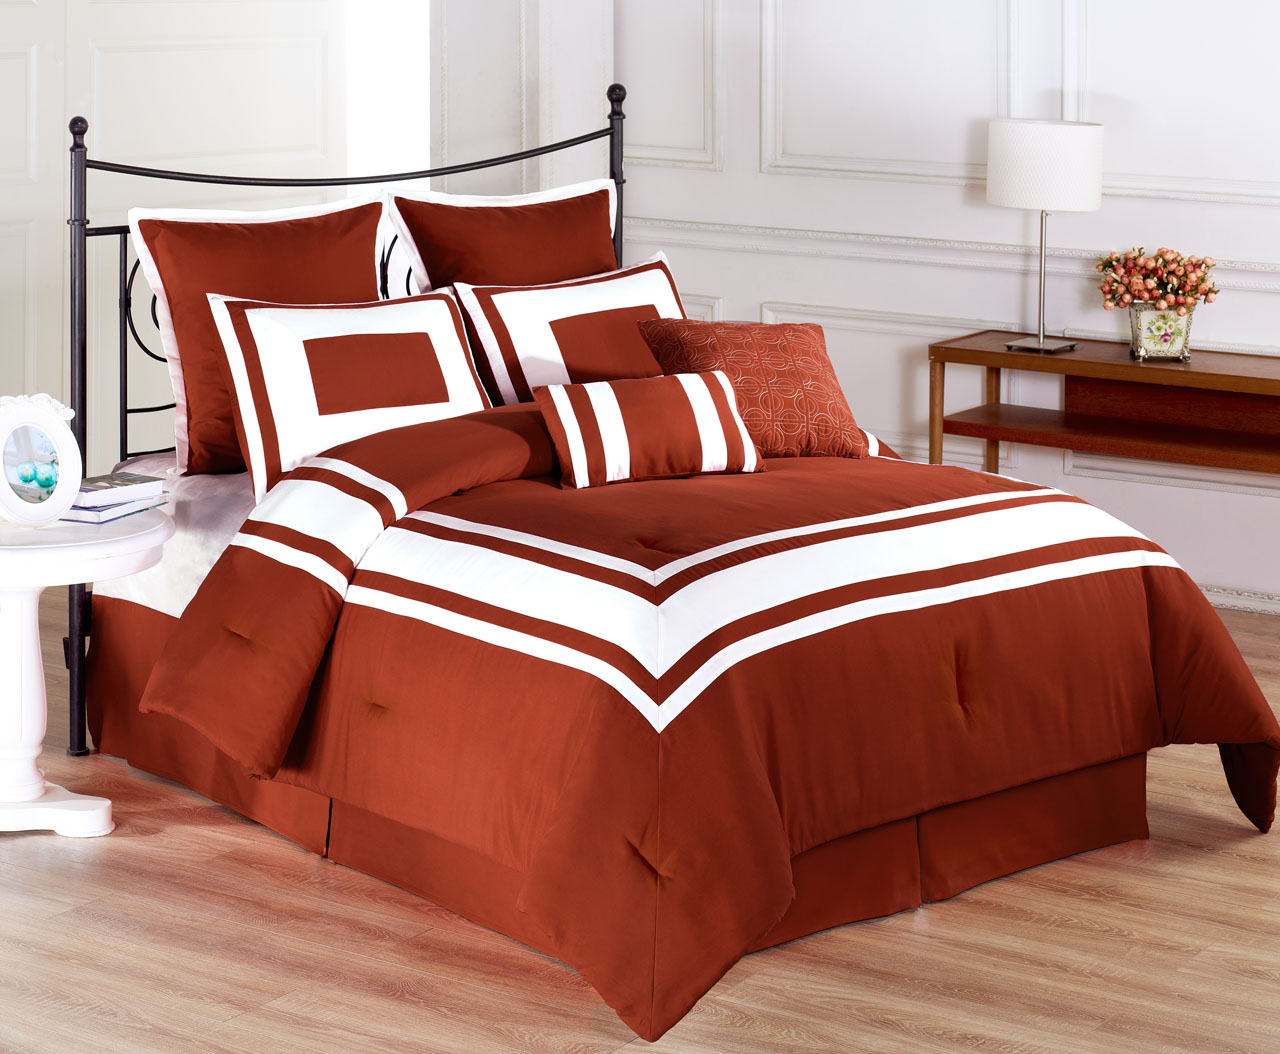 xfile orange red to comforter of queen burnt set u image unbelievable brown styles and bright inspiration bedding sets uncategorized